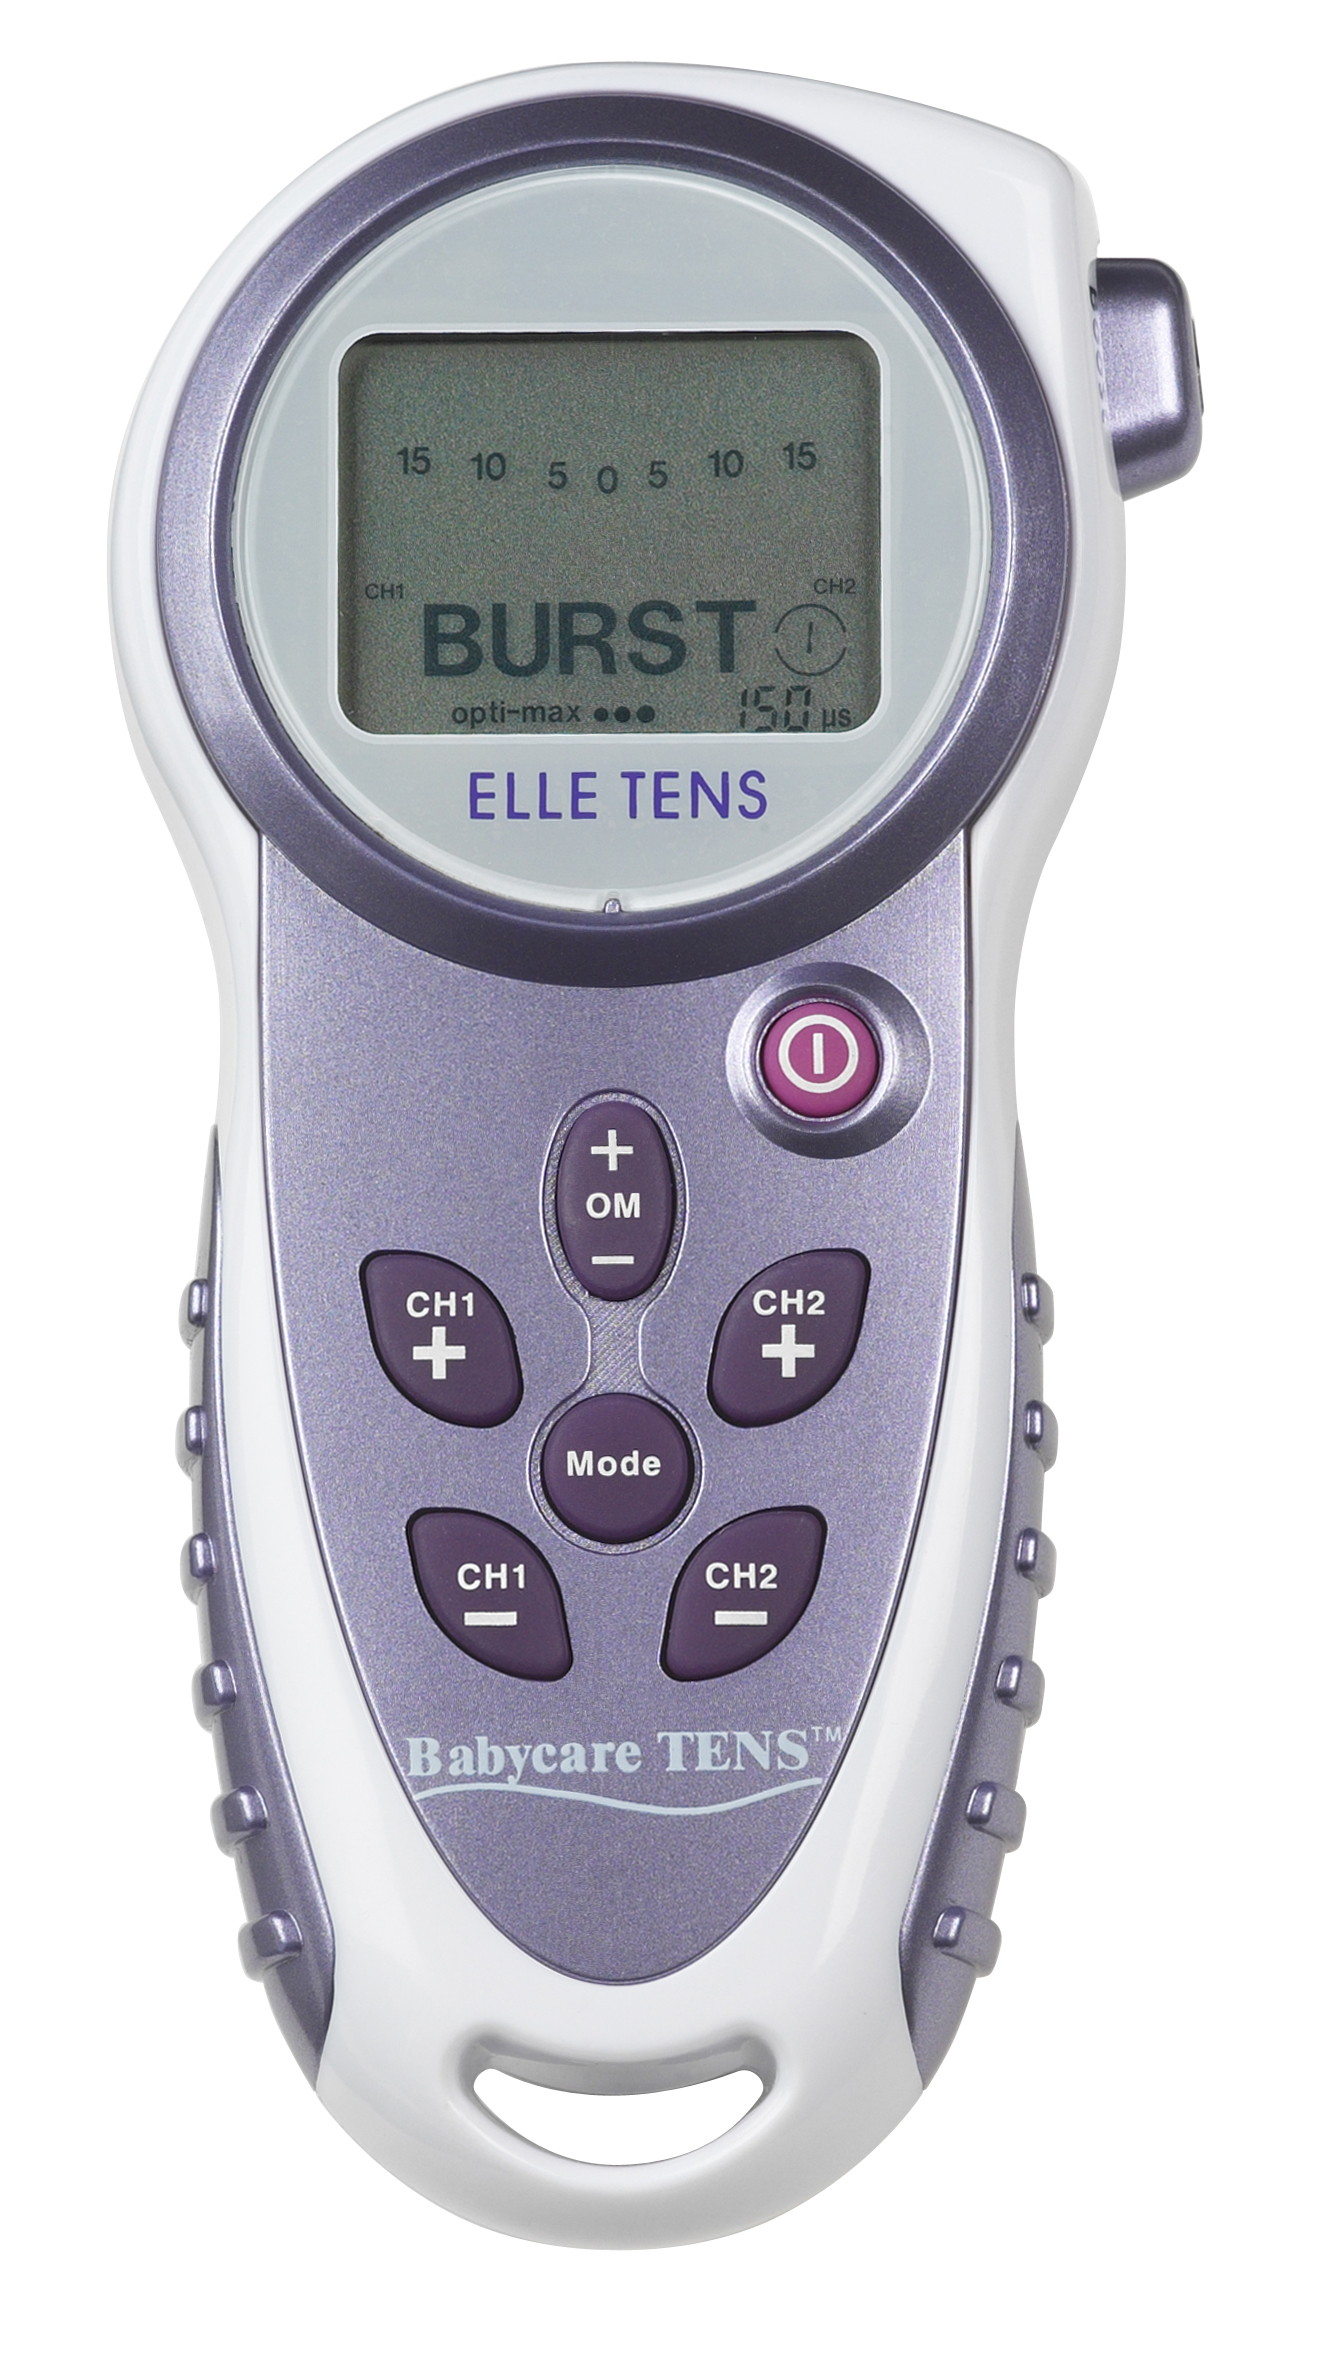 Elle Tens Machine For A Natural Birth Birth Partner